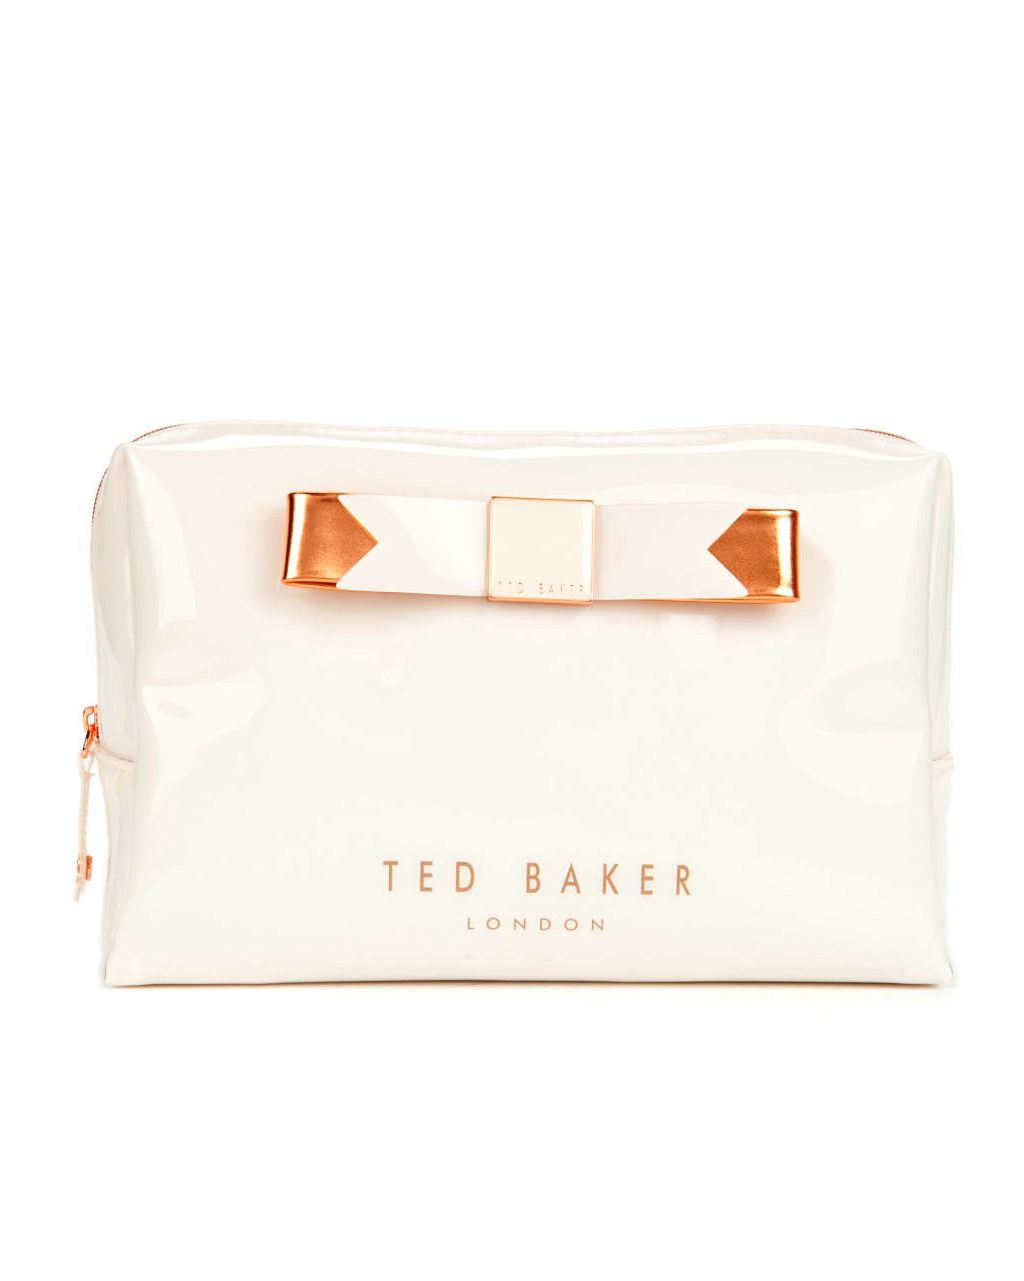 beauty-glowing-complexion-ted-baker-cosmetic-bag-0914.jpg